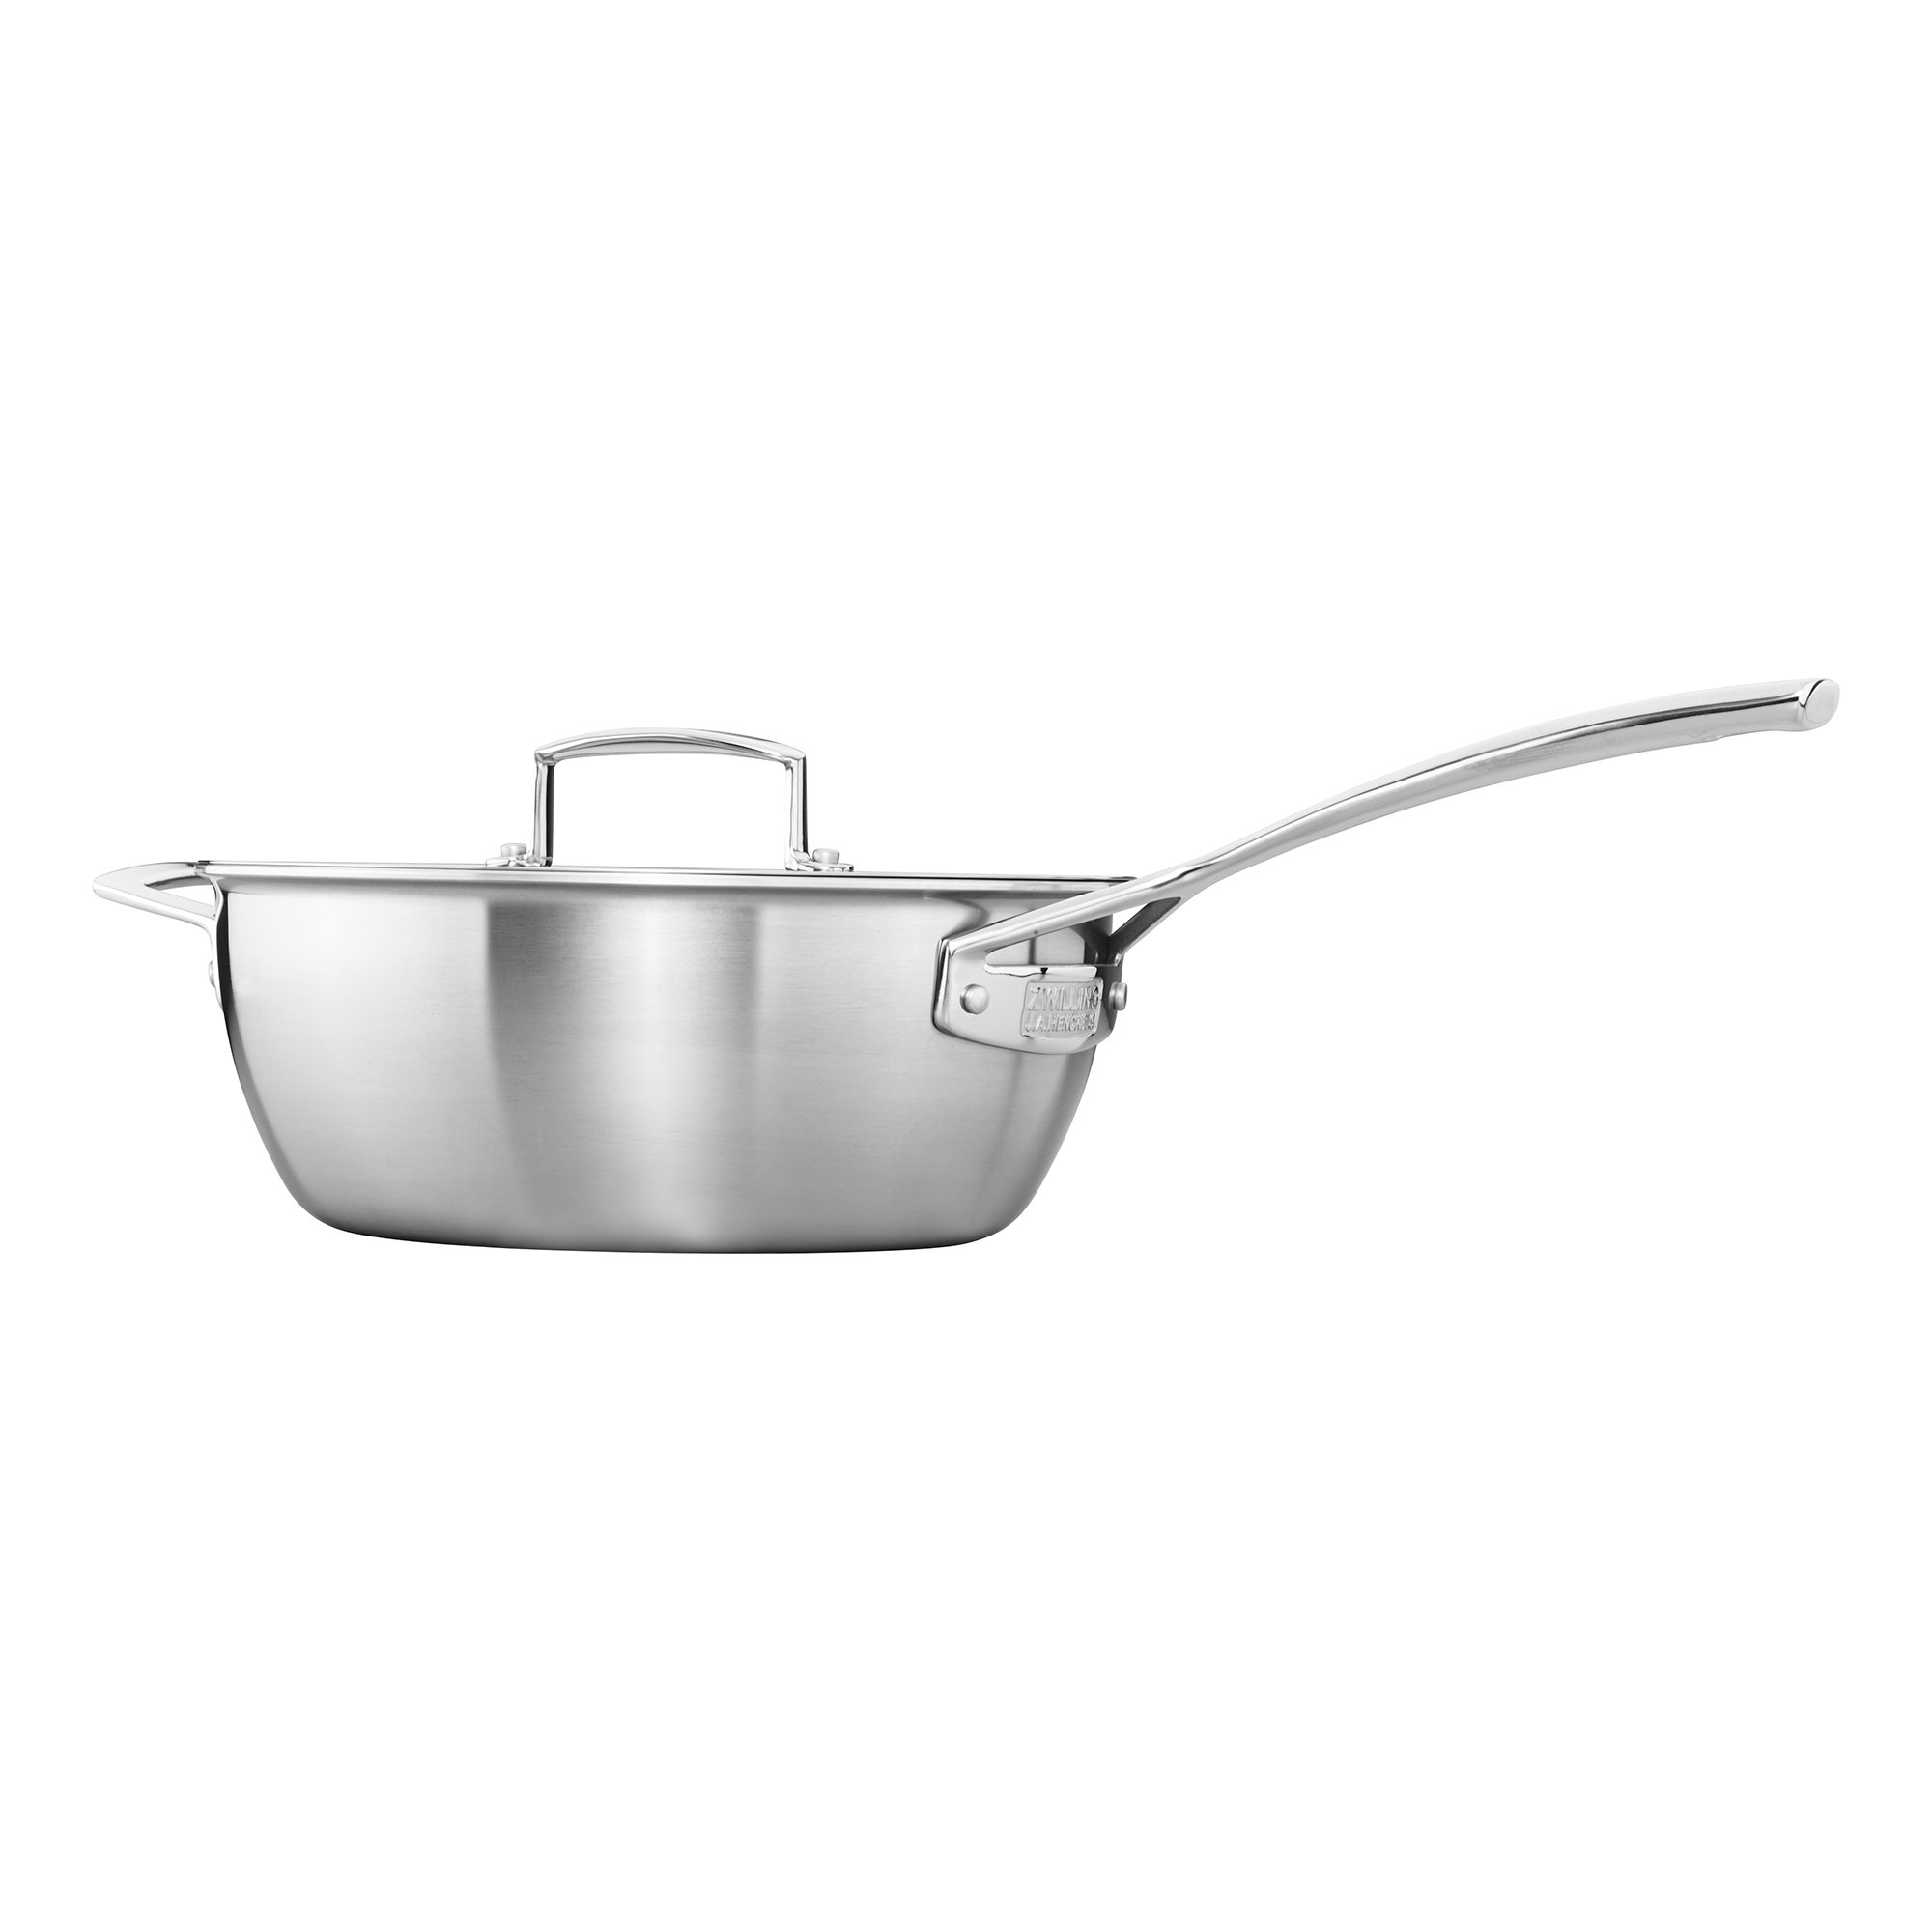 ZWILLING J.A. Henckels 66080-240 Saucier, 3.5 quart, Stainless Steel by ZWILLING J.A. Henckels (Image #4)